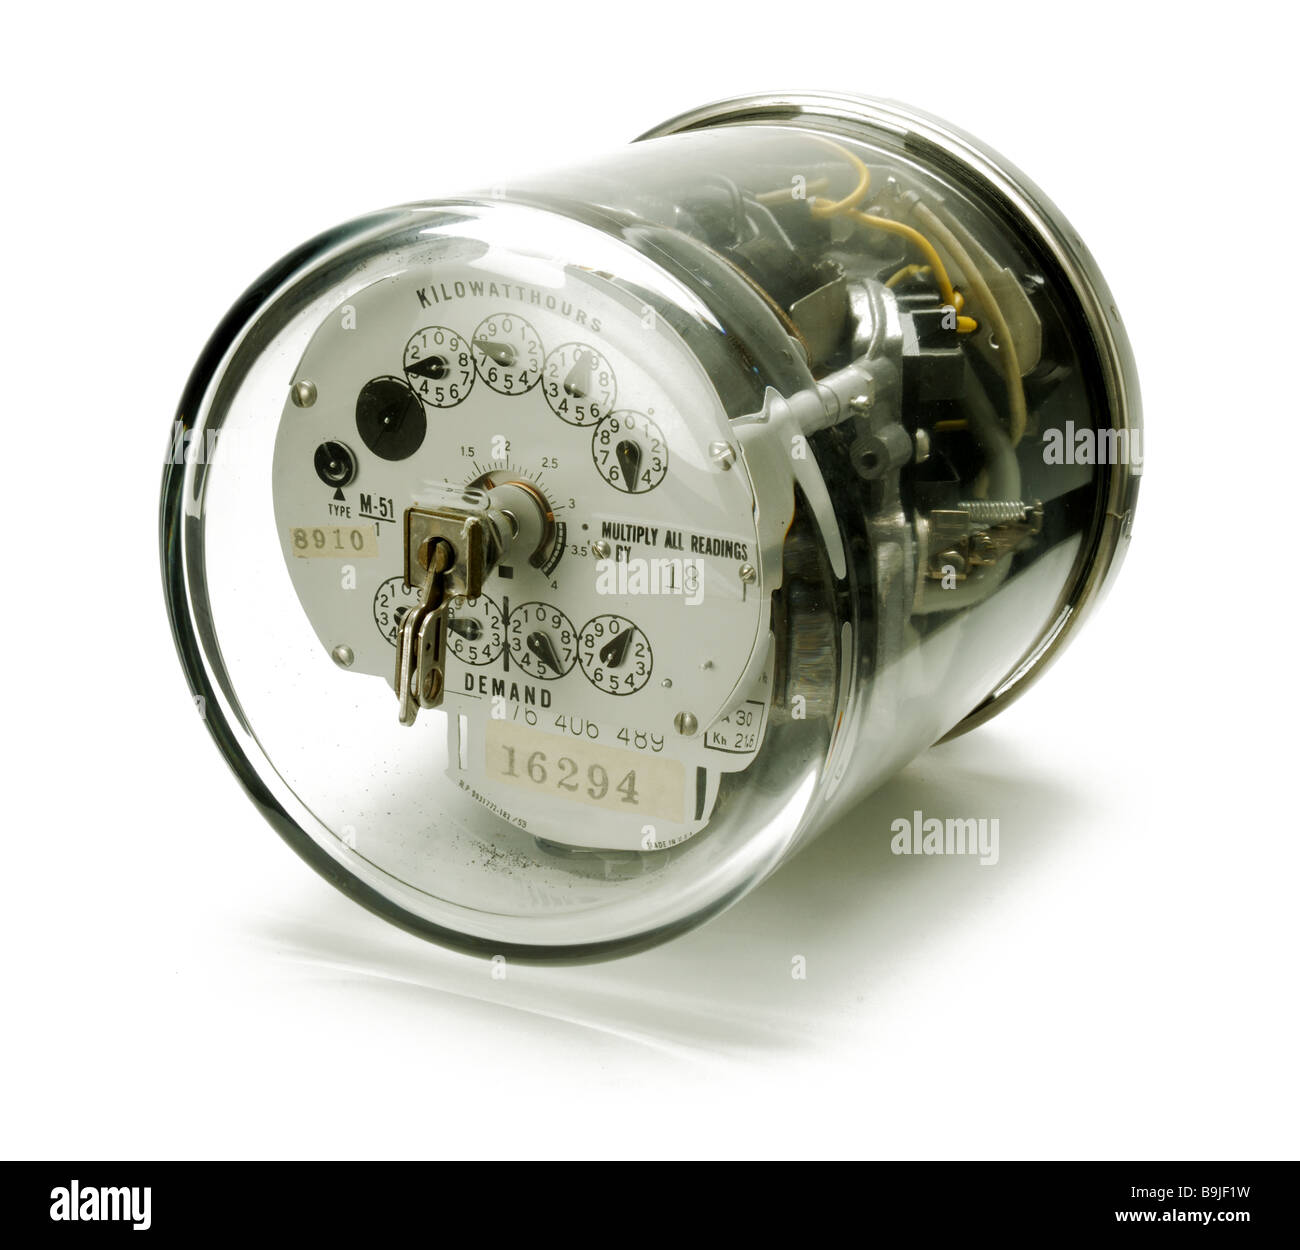 An electrical power meter on it's side - Stock Image